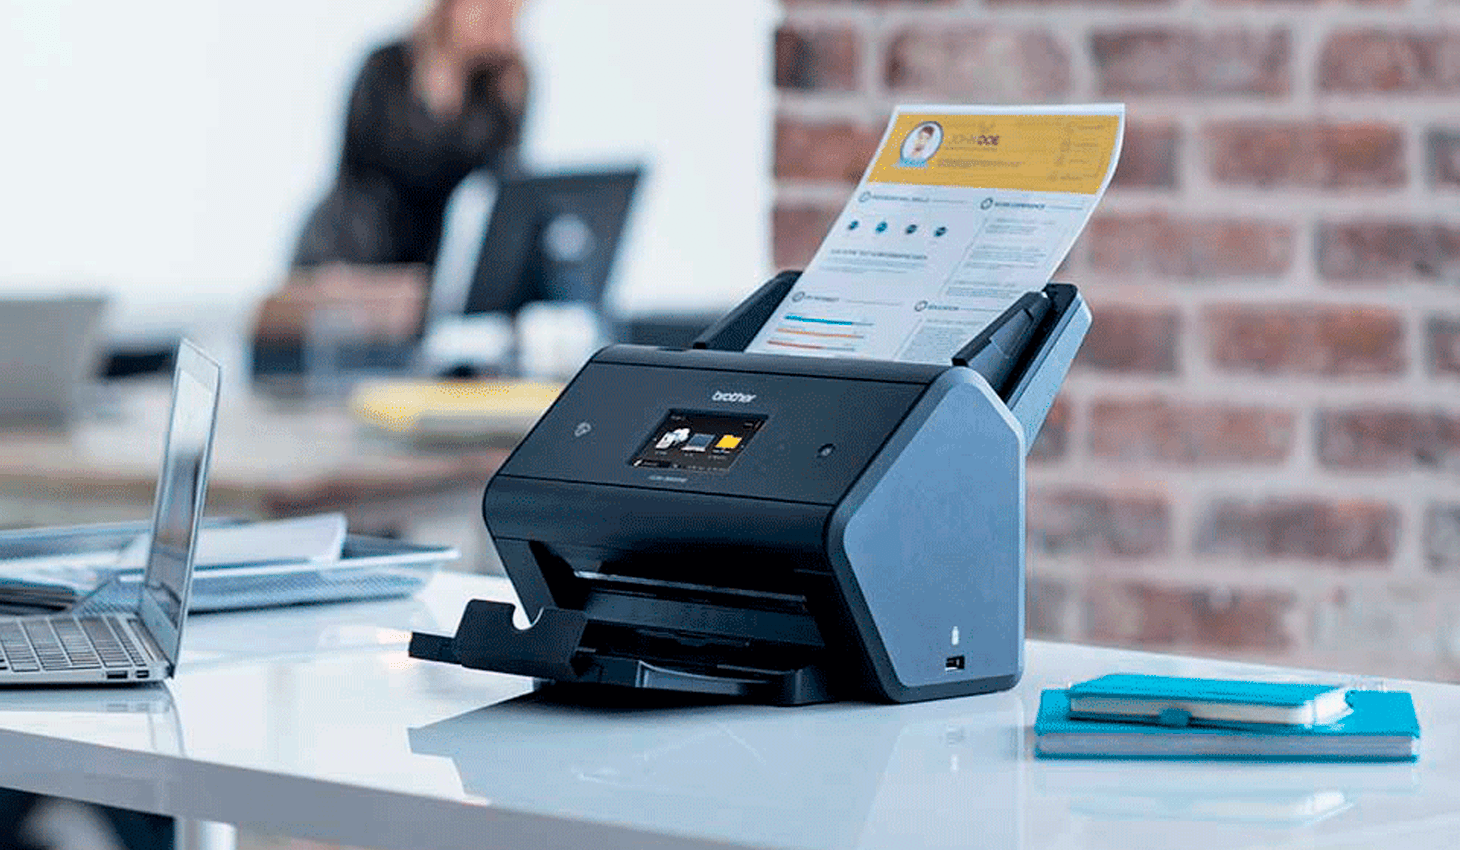 Brother scanner on a desk in an office environment